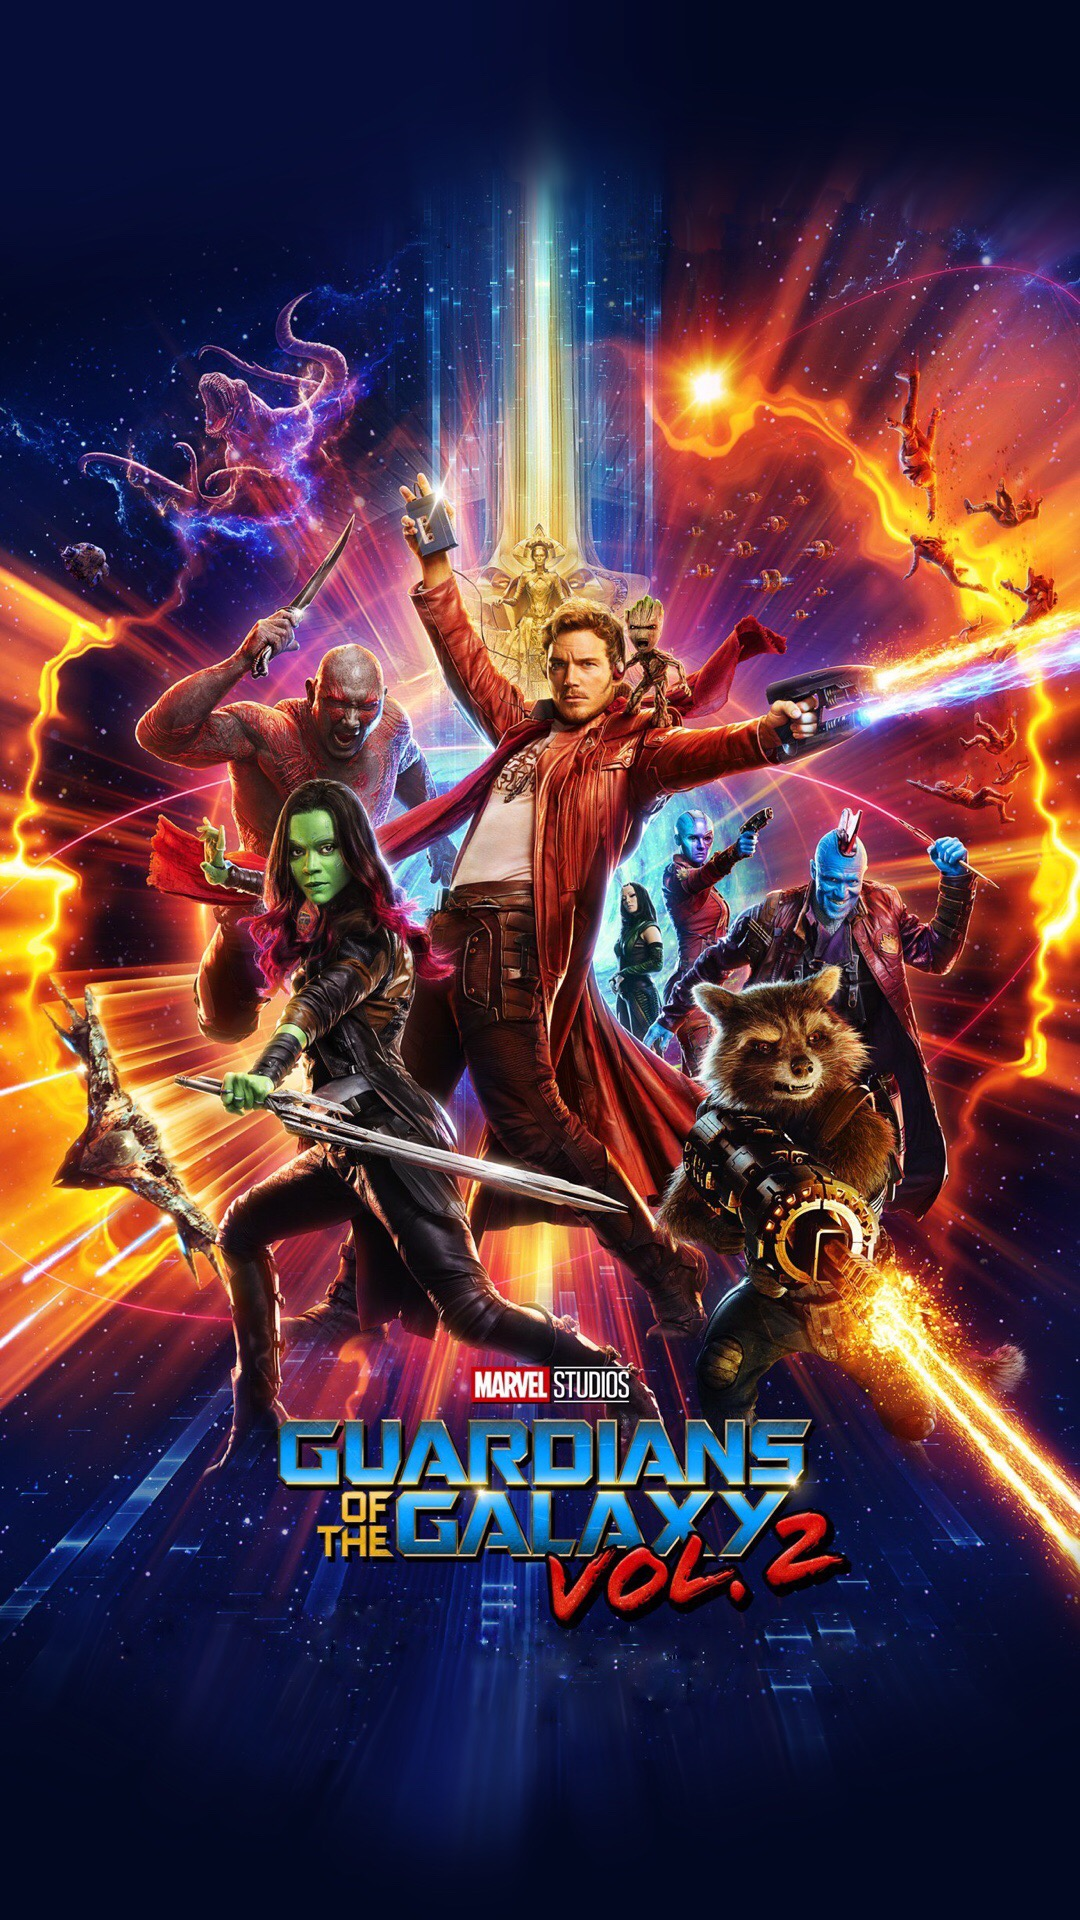 Iphone X Wallpaper Official Guardians Of The Galaxy Vol 2 Wallpapers